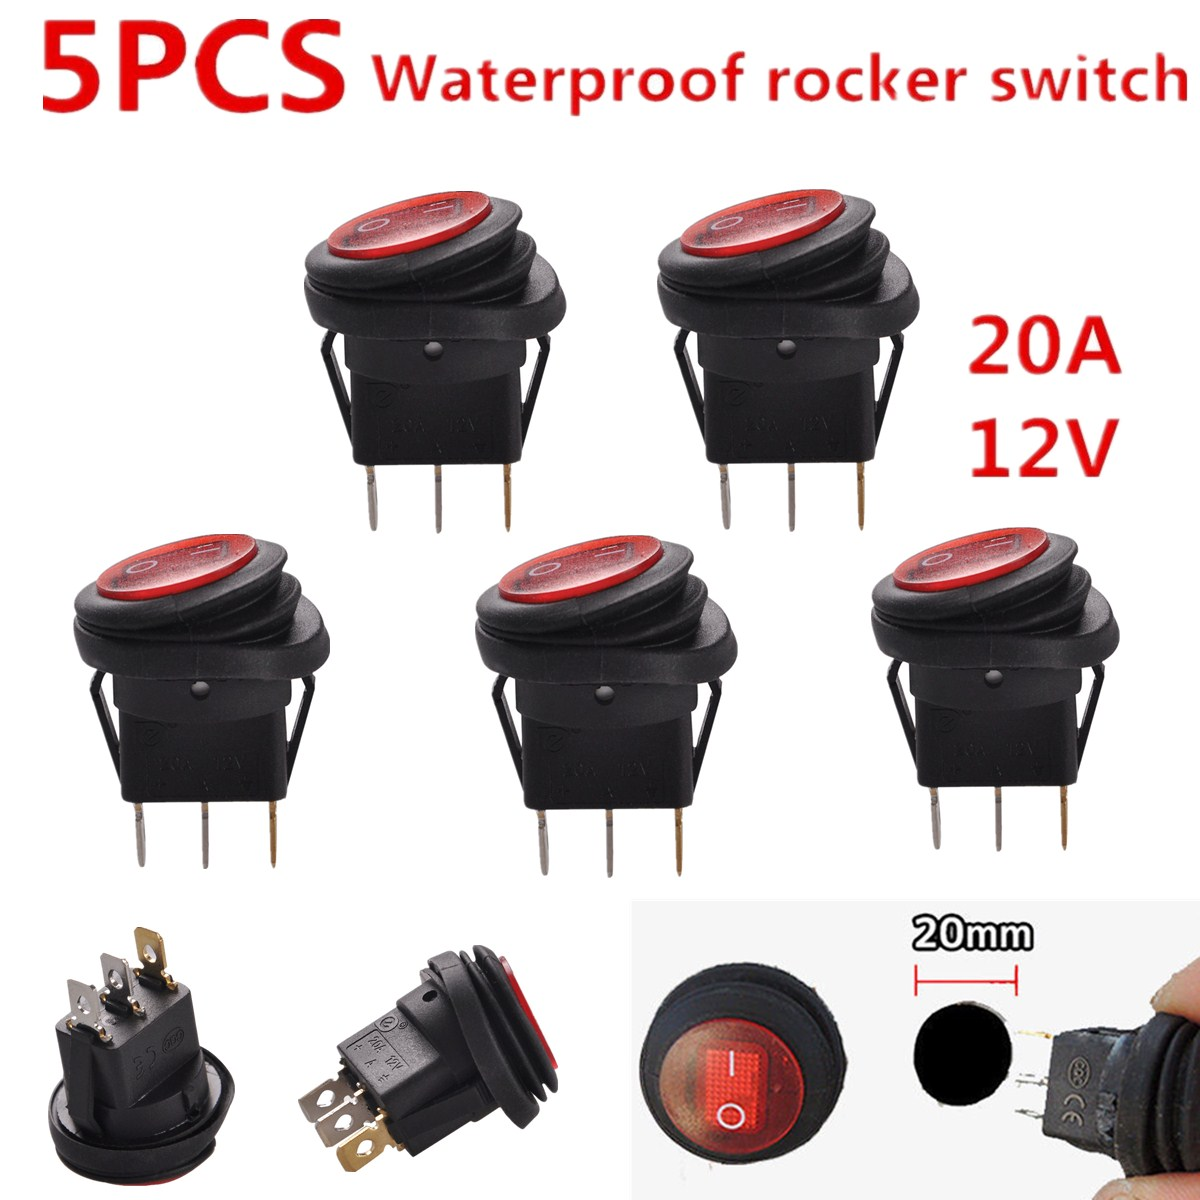 5pcs 12v 20a Waterproof Round On Off Rocker Switch Car Auto Boat Switches Mini Spst Onoff 5x Marine Red